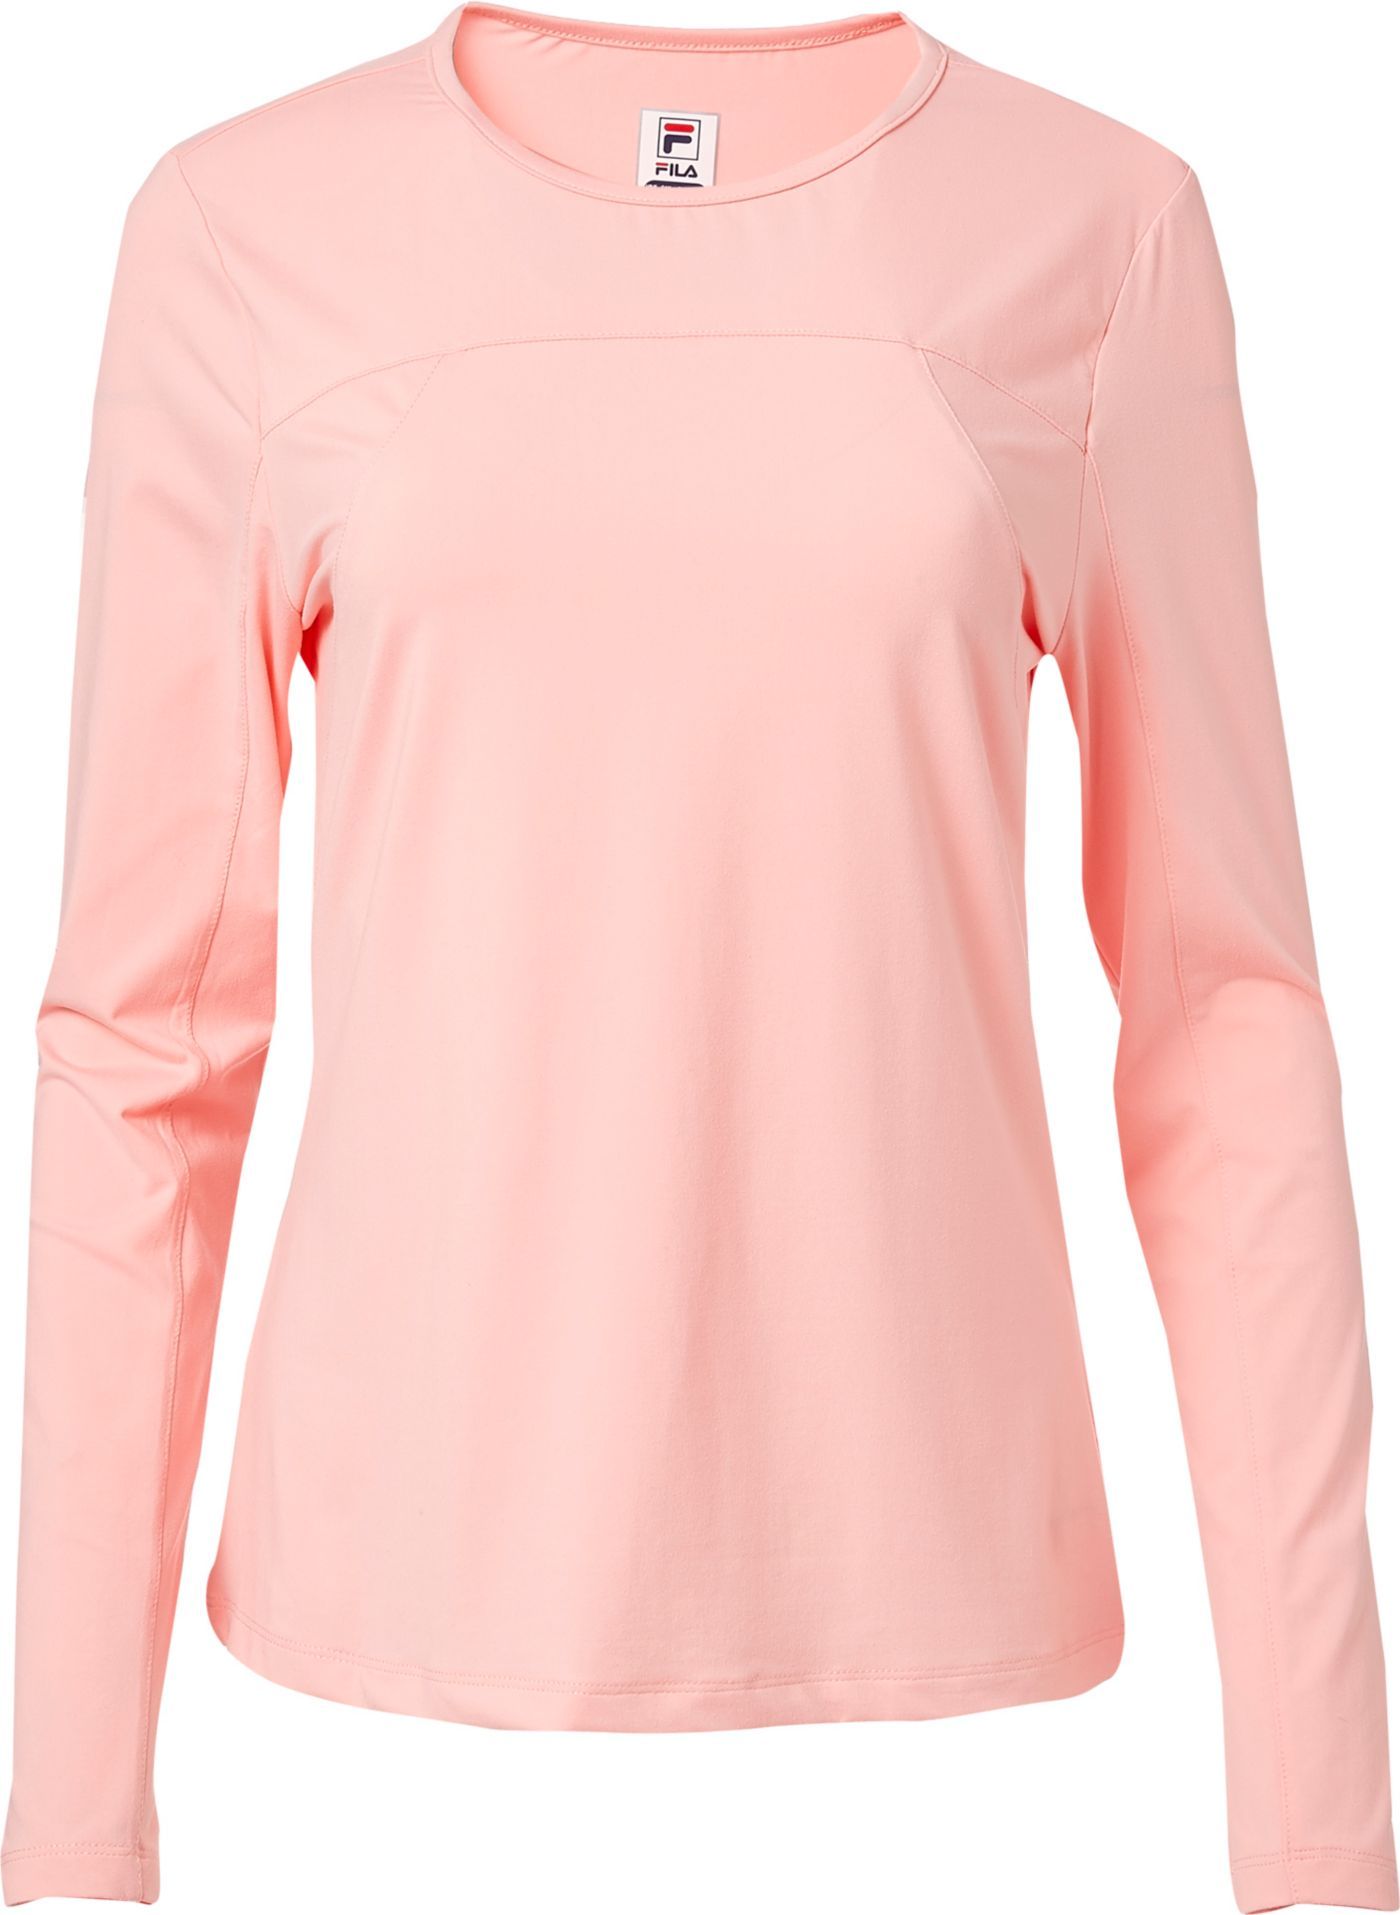 Fila Women's UV Blocker Long Sleeve Tennis Shirt